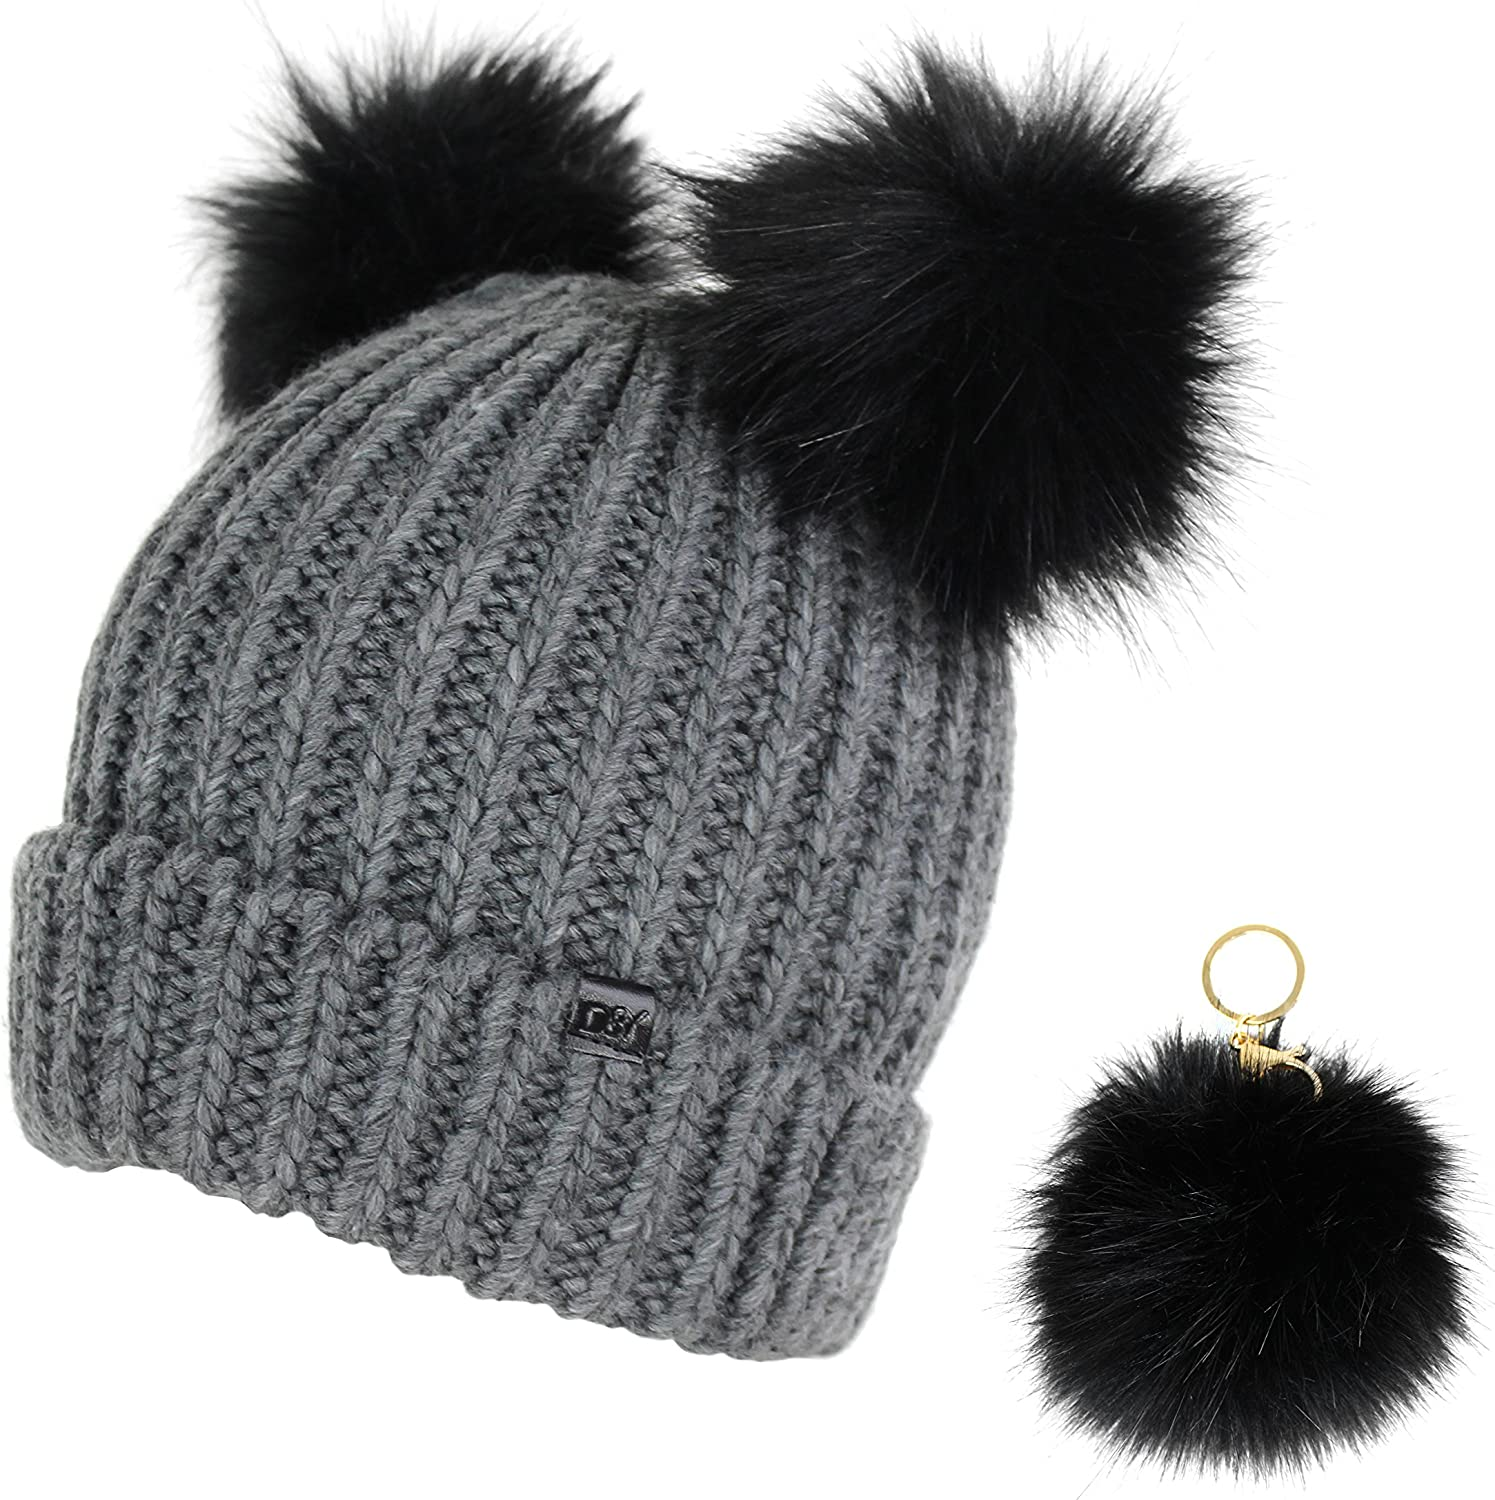 Elliott and Oliver Co. Trendy Cuff Winter Chunky Knit Beanie Hat with Double Faux Fur Pom Pom Bear Ears & Key Chain